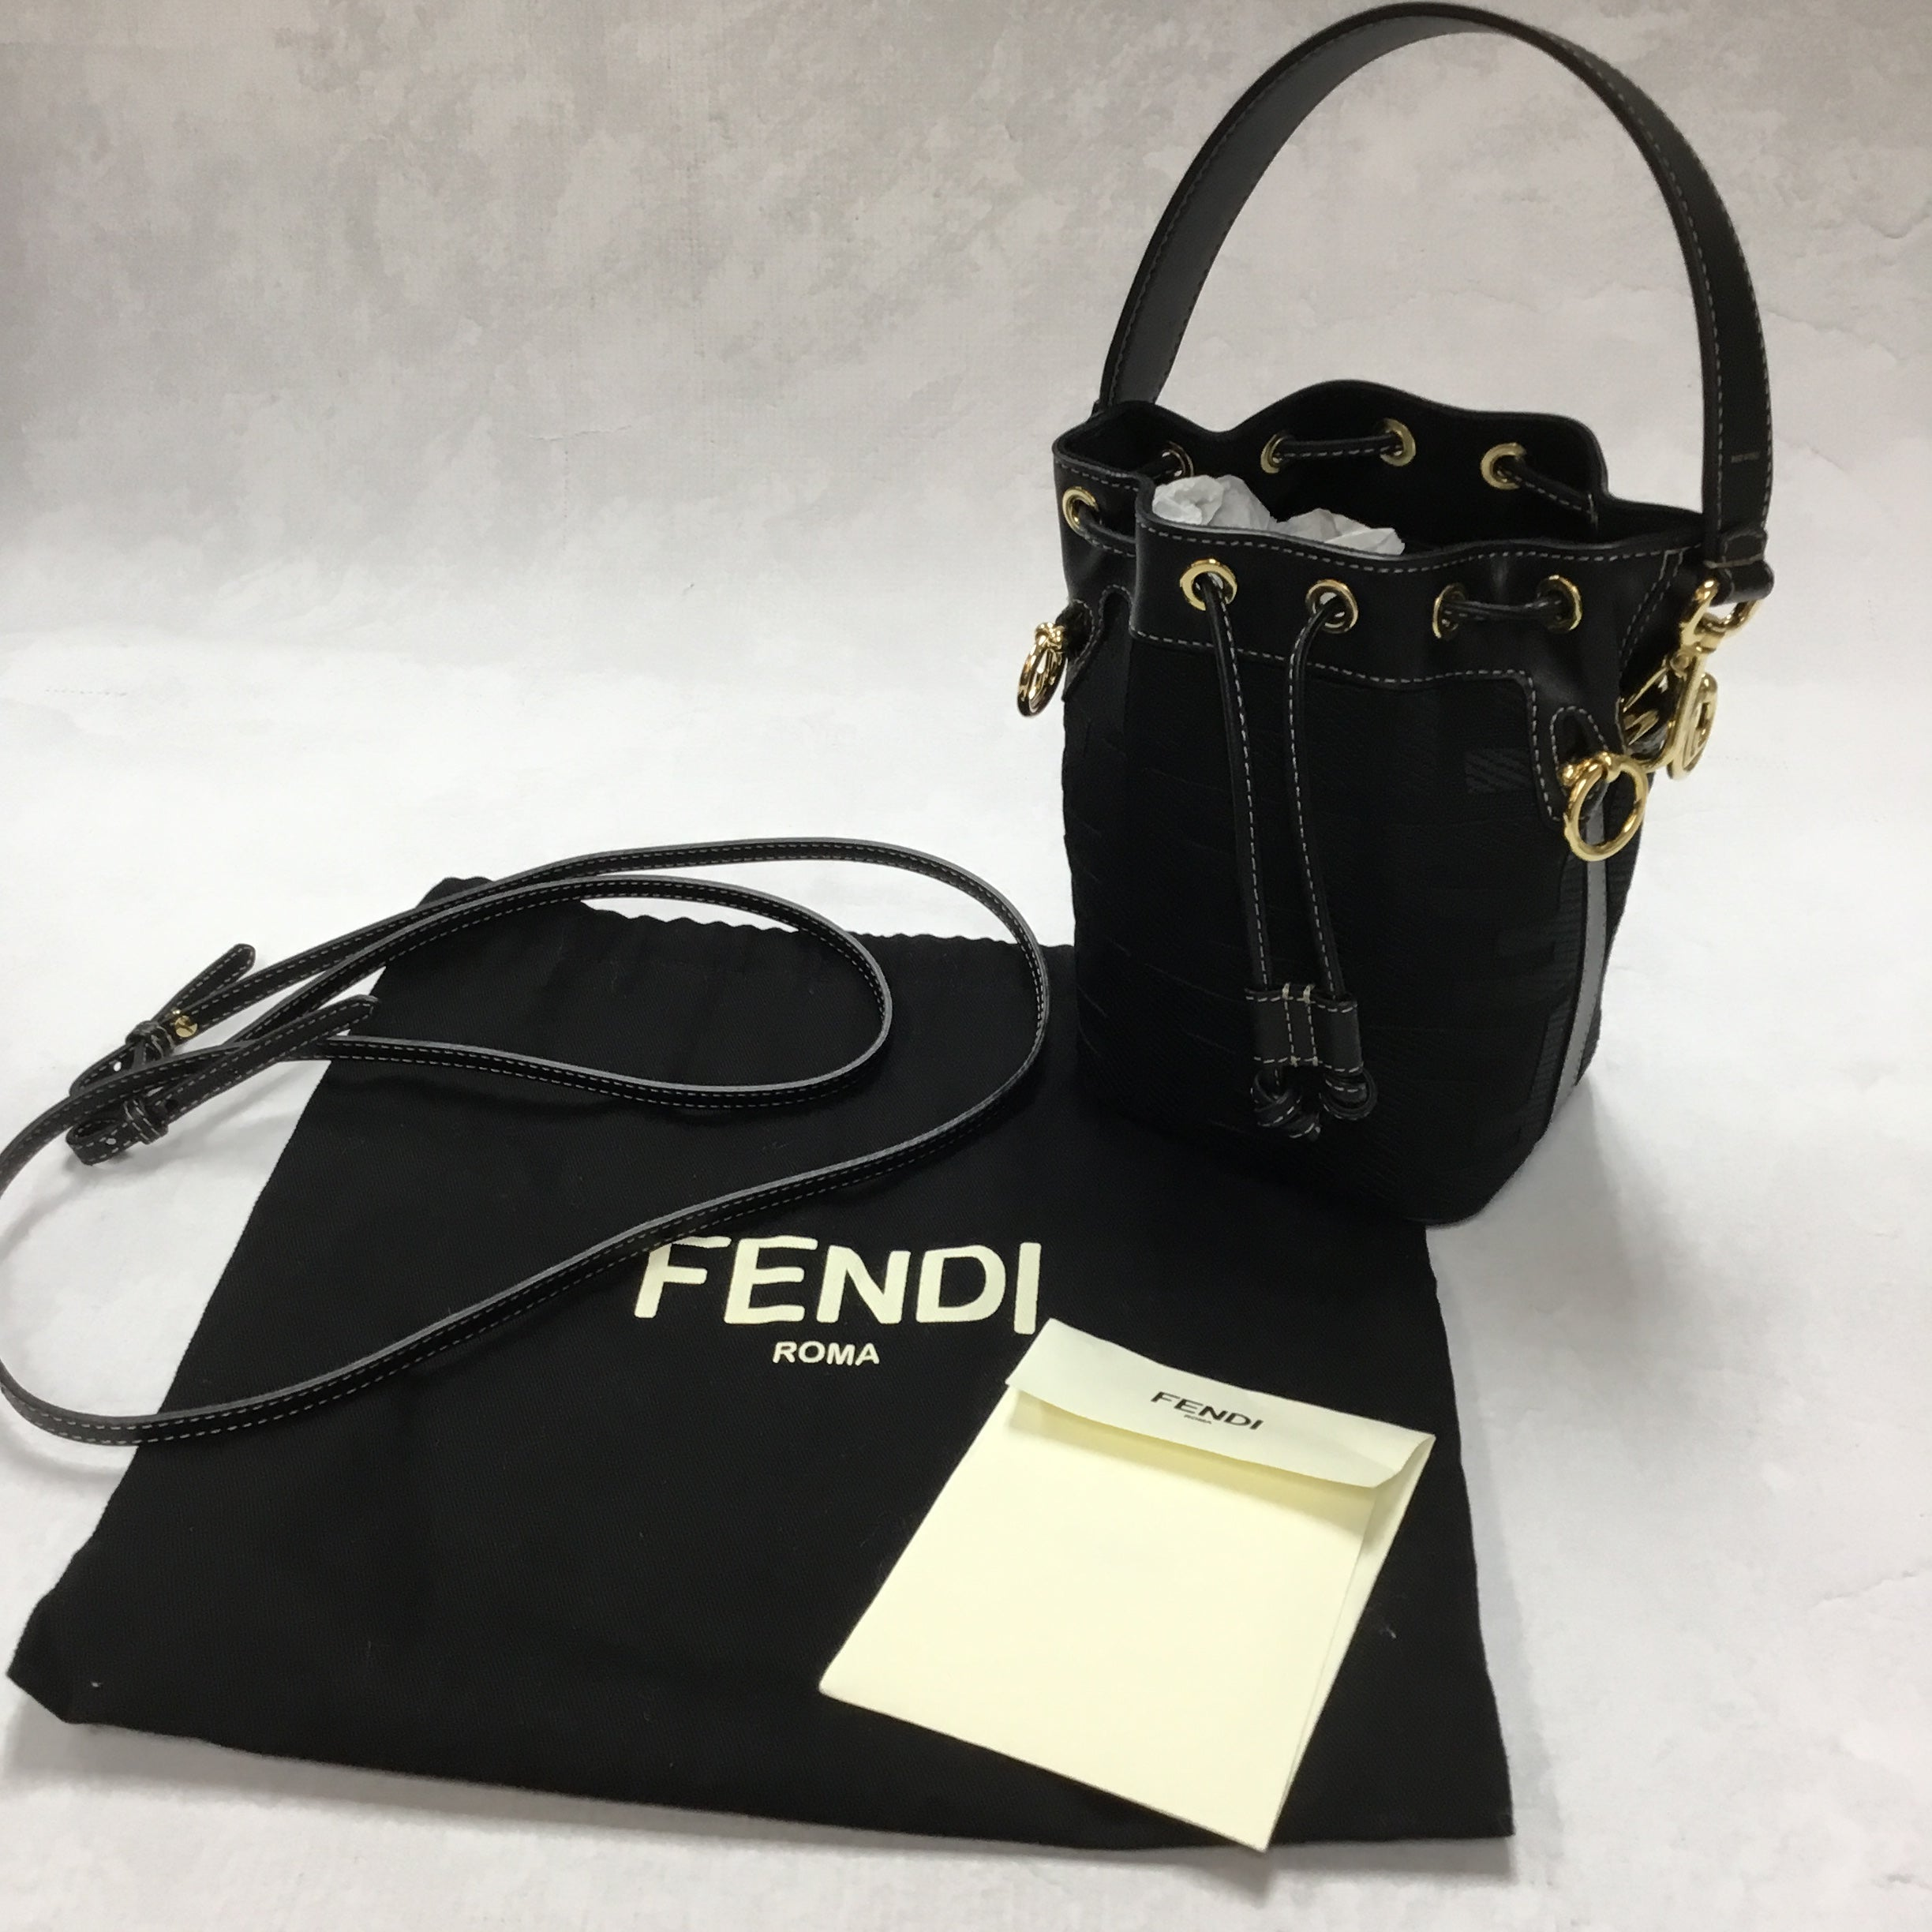 Primary Photo - <P>BRAND: FENDI <BR>STYLE: HANDBAG DESIGNER <BR>COLOR: BLACK <BR>SIZE: SMALL <BR>OTHER INFO: MINI MON TRESOR CANVAS BUCKET BAG <BR>SKU: 194-19414-36310</P> <P>WITH ENTRUPY CERTIFICATION</P> <P>LENGTH 4.7 IN, HEIGHT 7.1 IN, DEPTH 3.9 IN</P> <UL></UL>